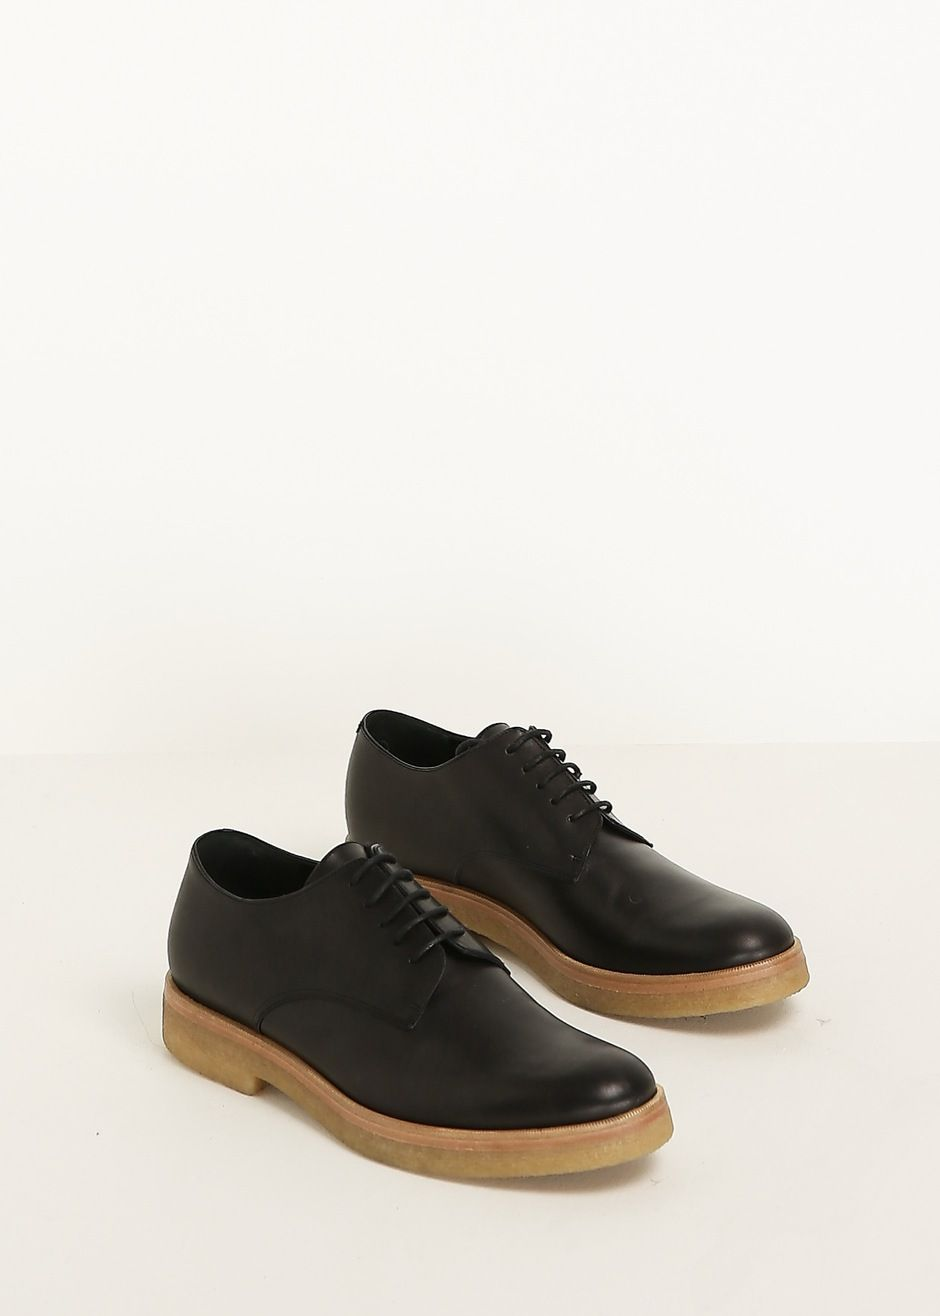 DRIES VAN NOTEN Leather Lace Ups 0oo1ckdP